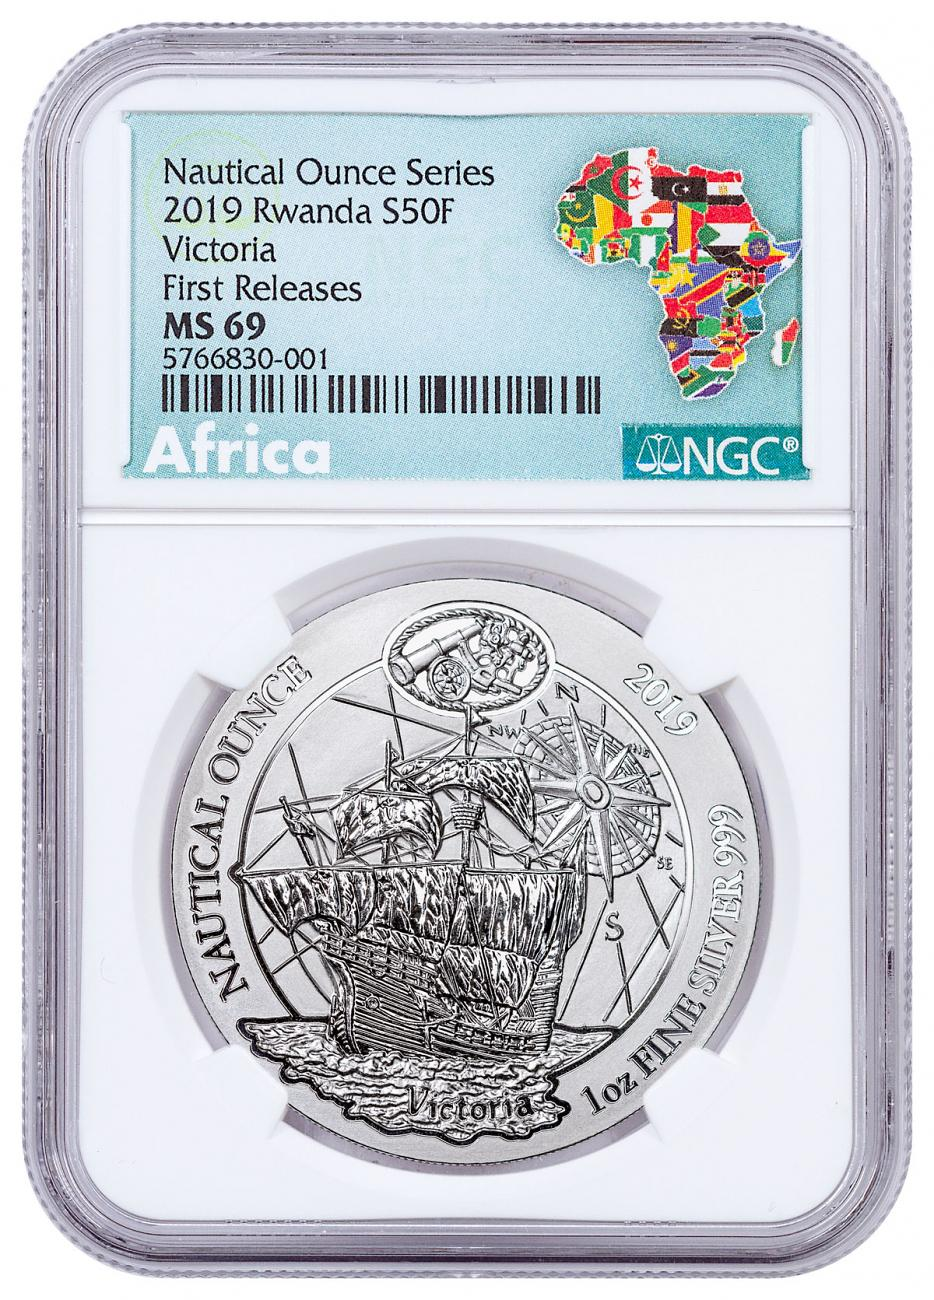 2019 Rwanda Nautical Ounces - 500th Anniversary of Victoria 1 oz Silver RWF Franc50 Coin NGC MS69 FR Exclusive Africa Label